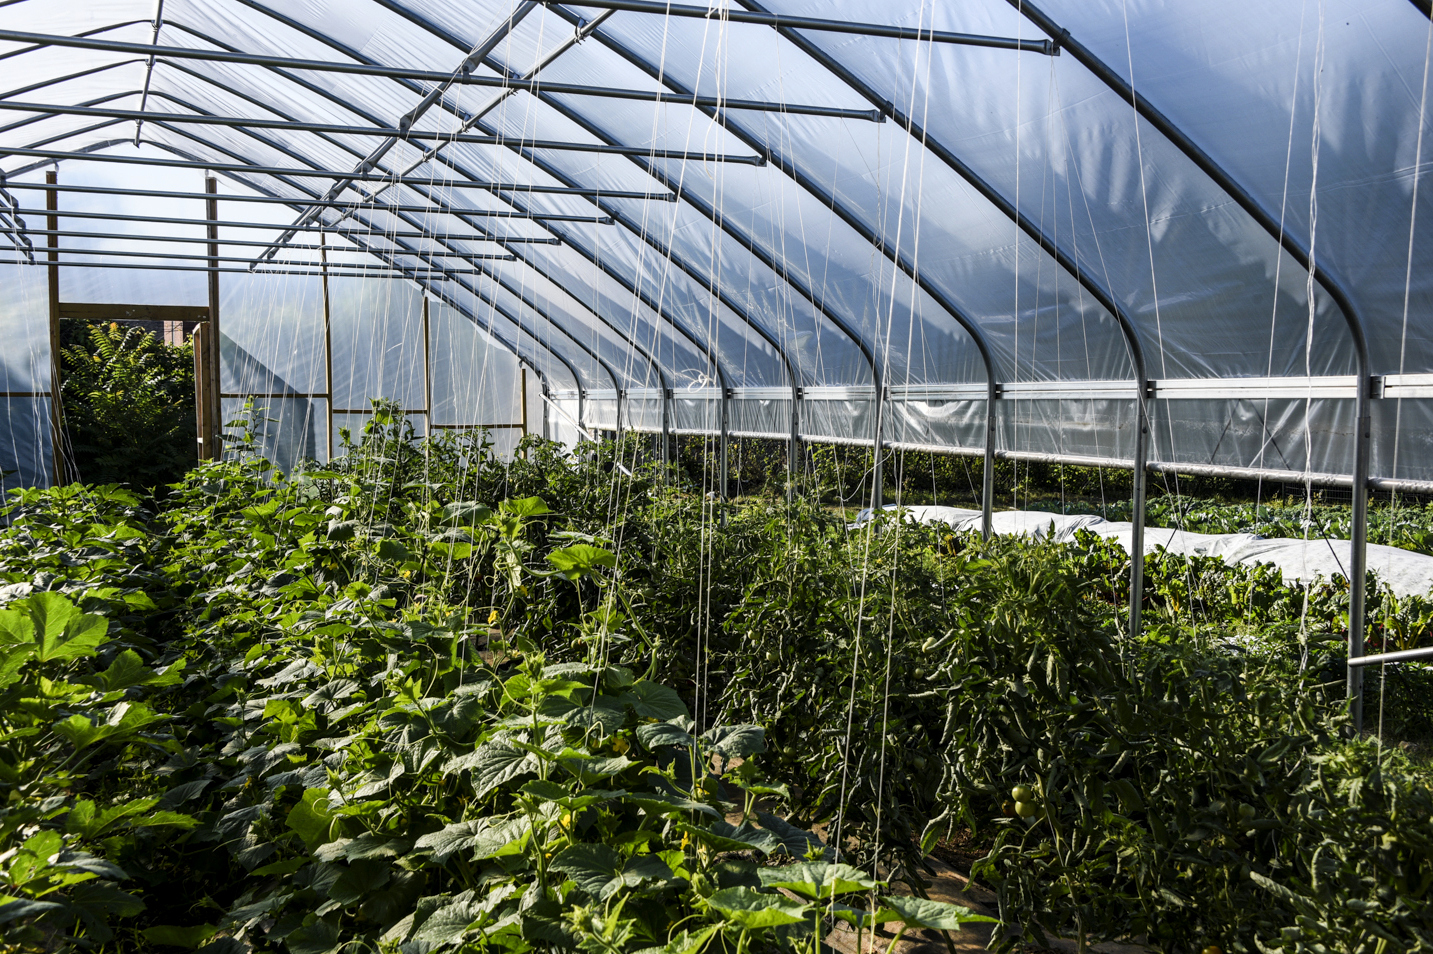 Tomatoes growing in one of the Cherry Hill Community Garden's hoop houses. (J.M. Giordano)